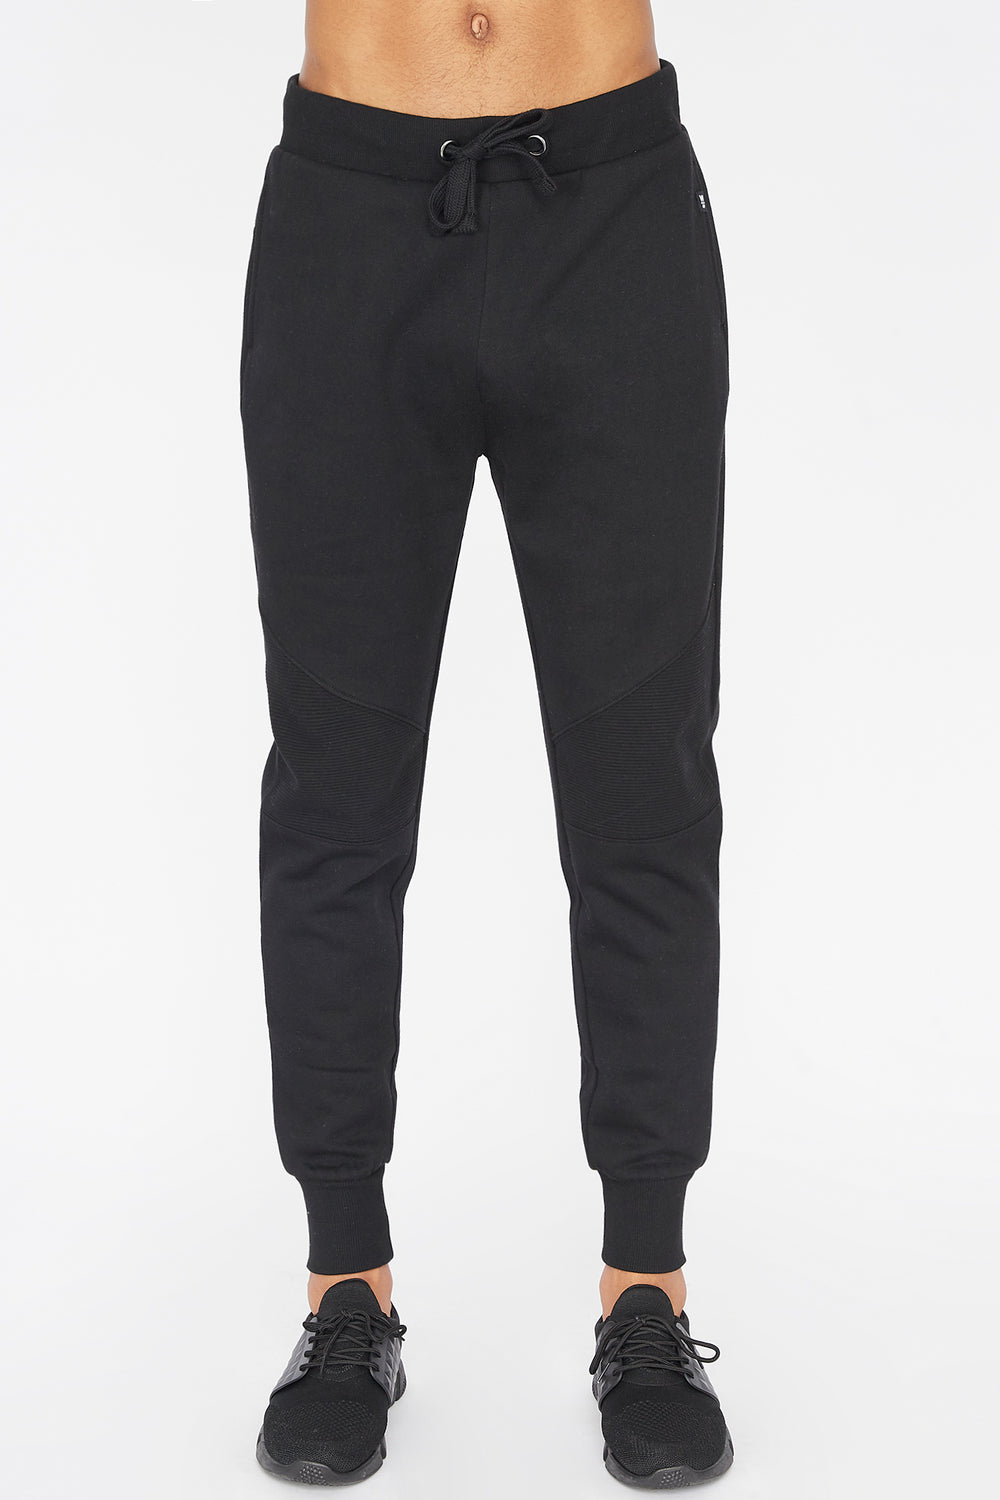 West49 Mens Solid Moto Jogger Black